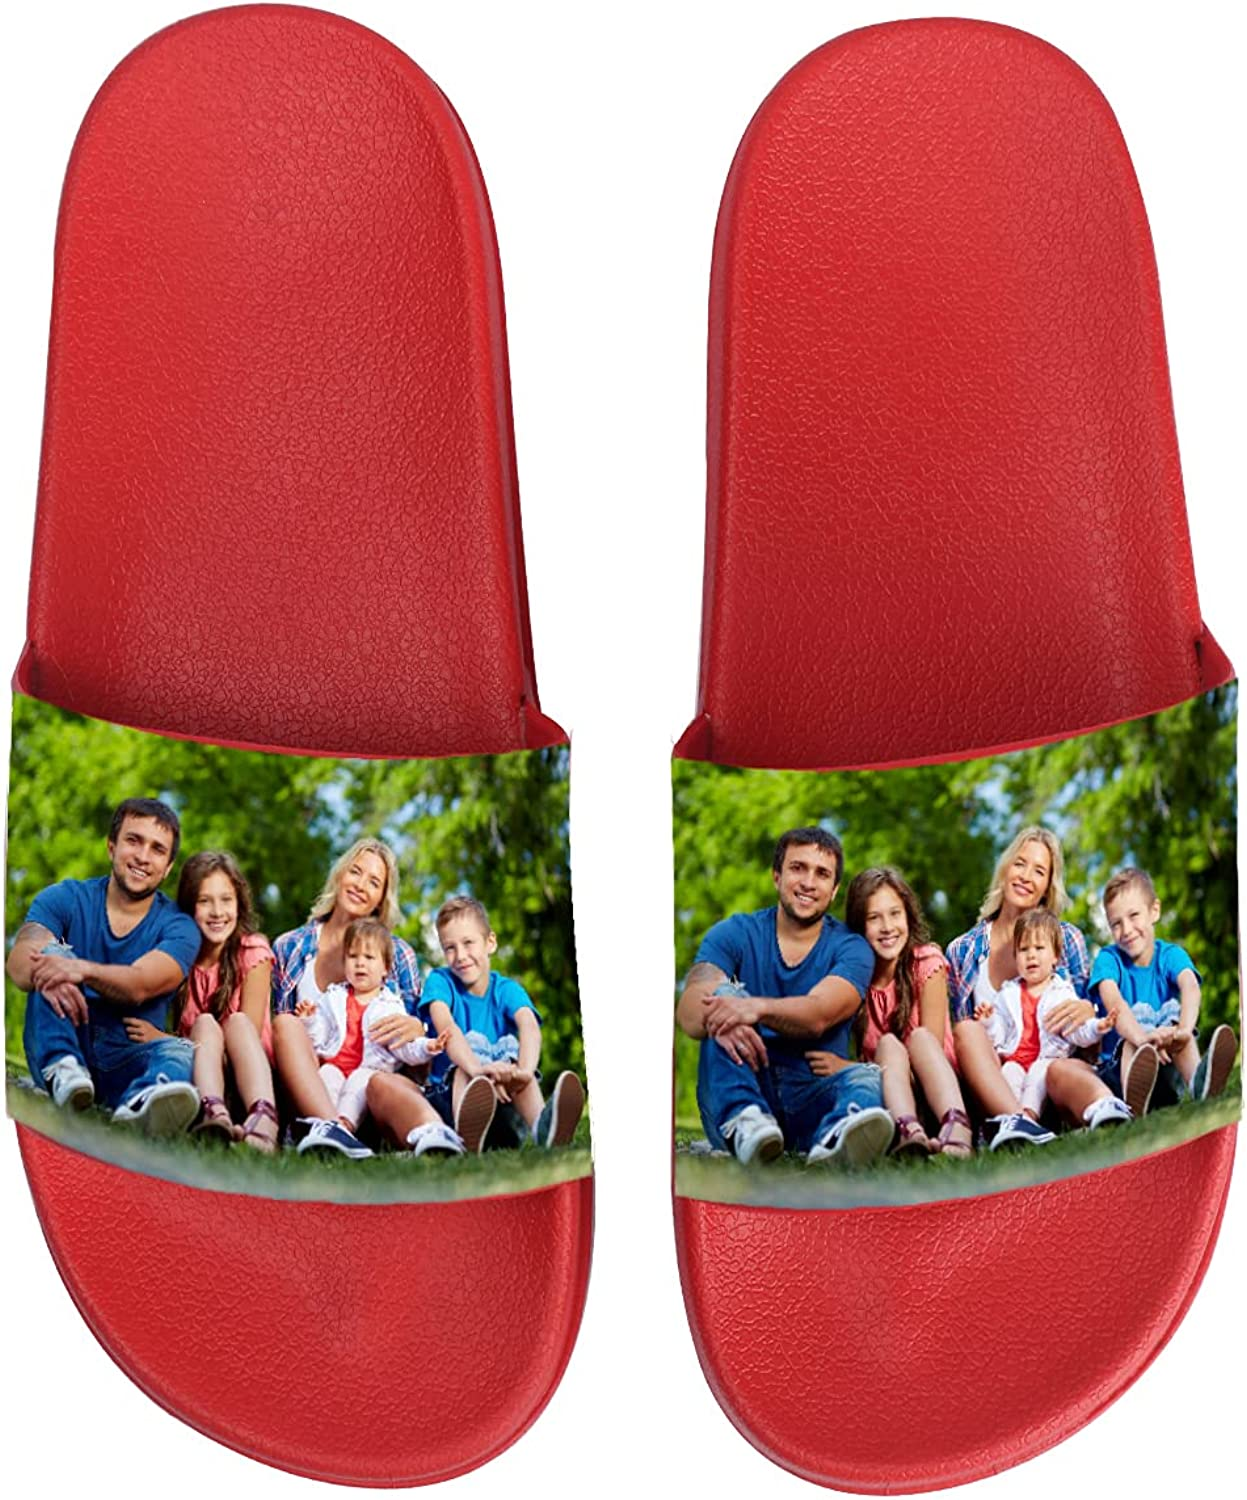 Personalized Slides Sandals with Your Photo/Text, Beach Casual C